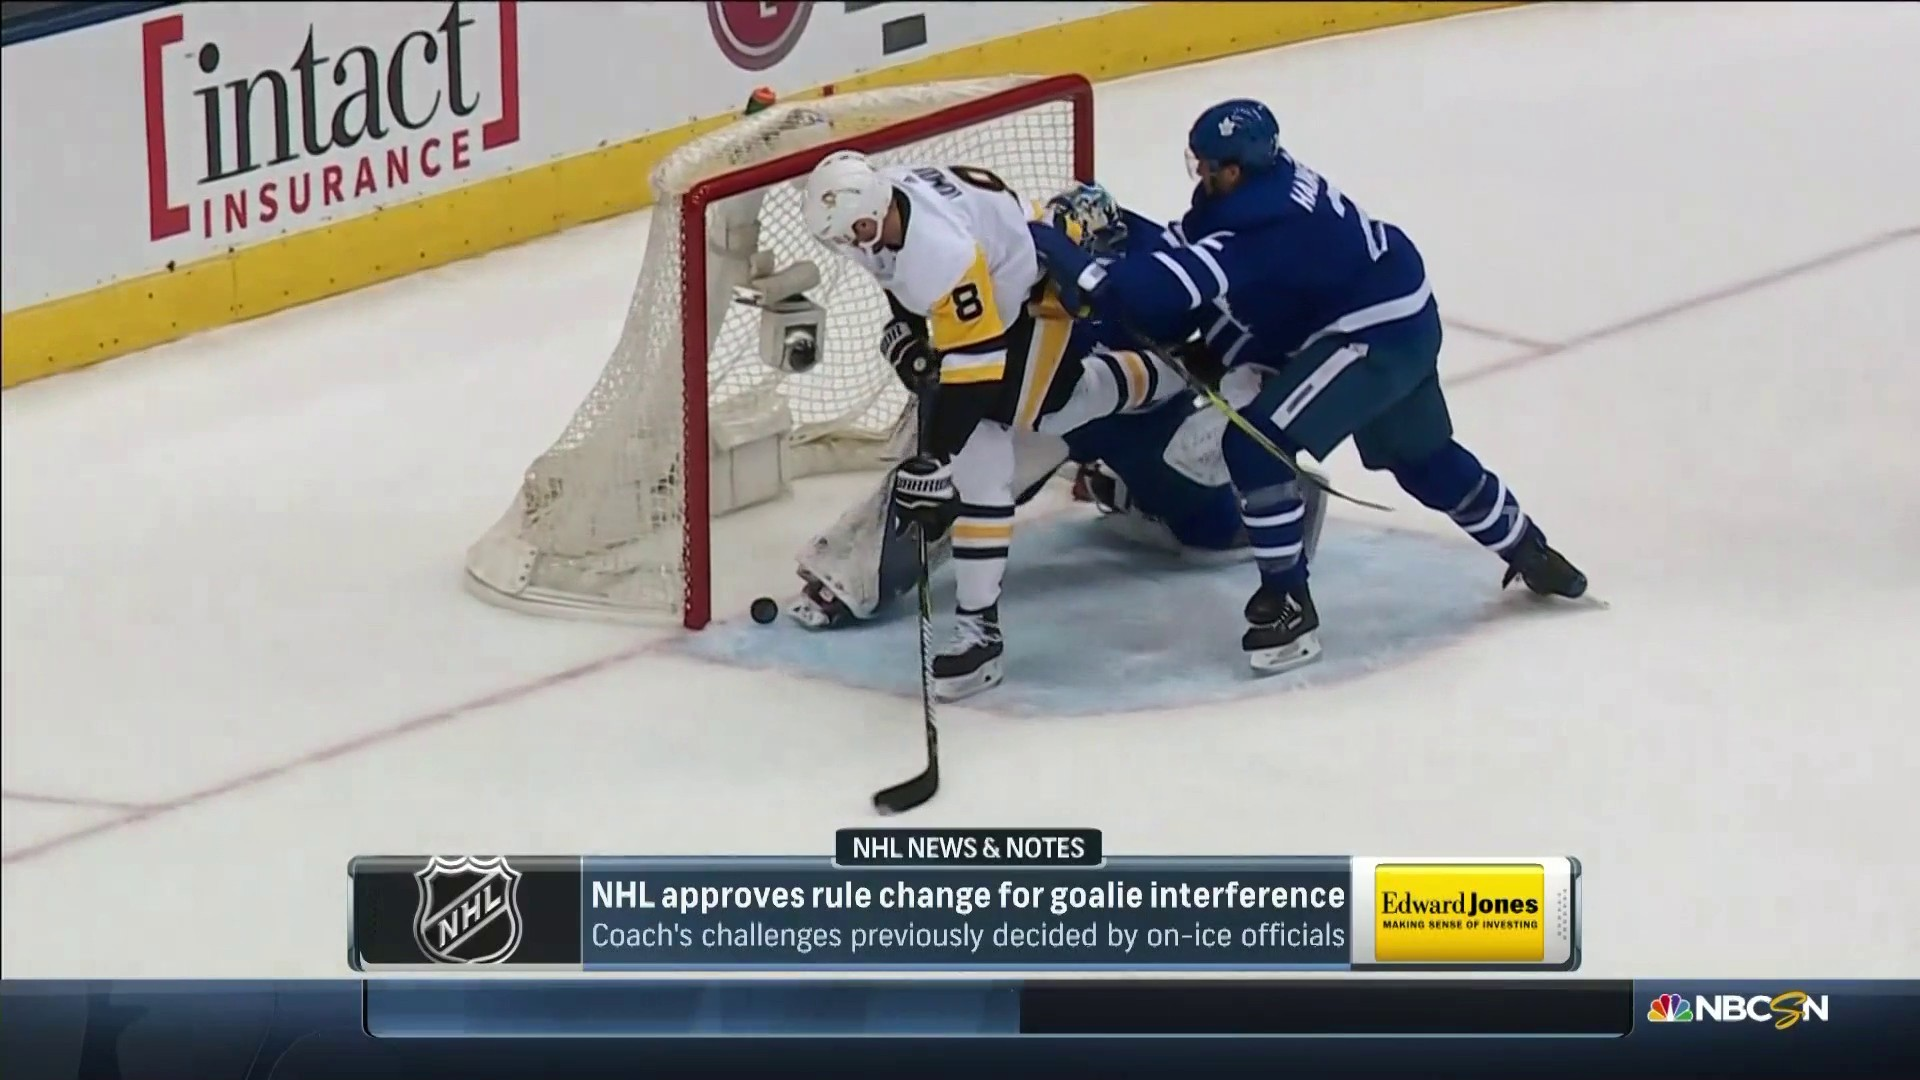 Nhl Approves Goalie Interference Rule Change Effective Immediately